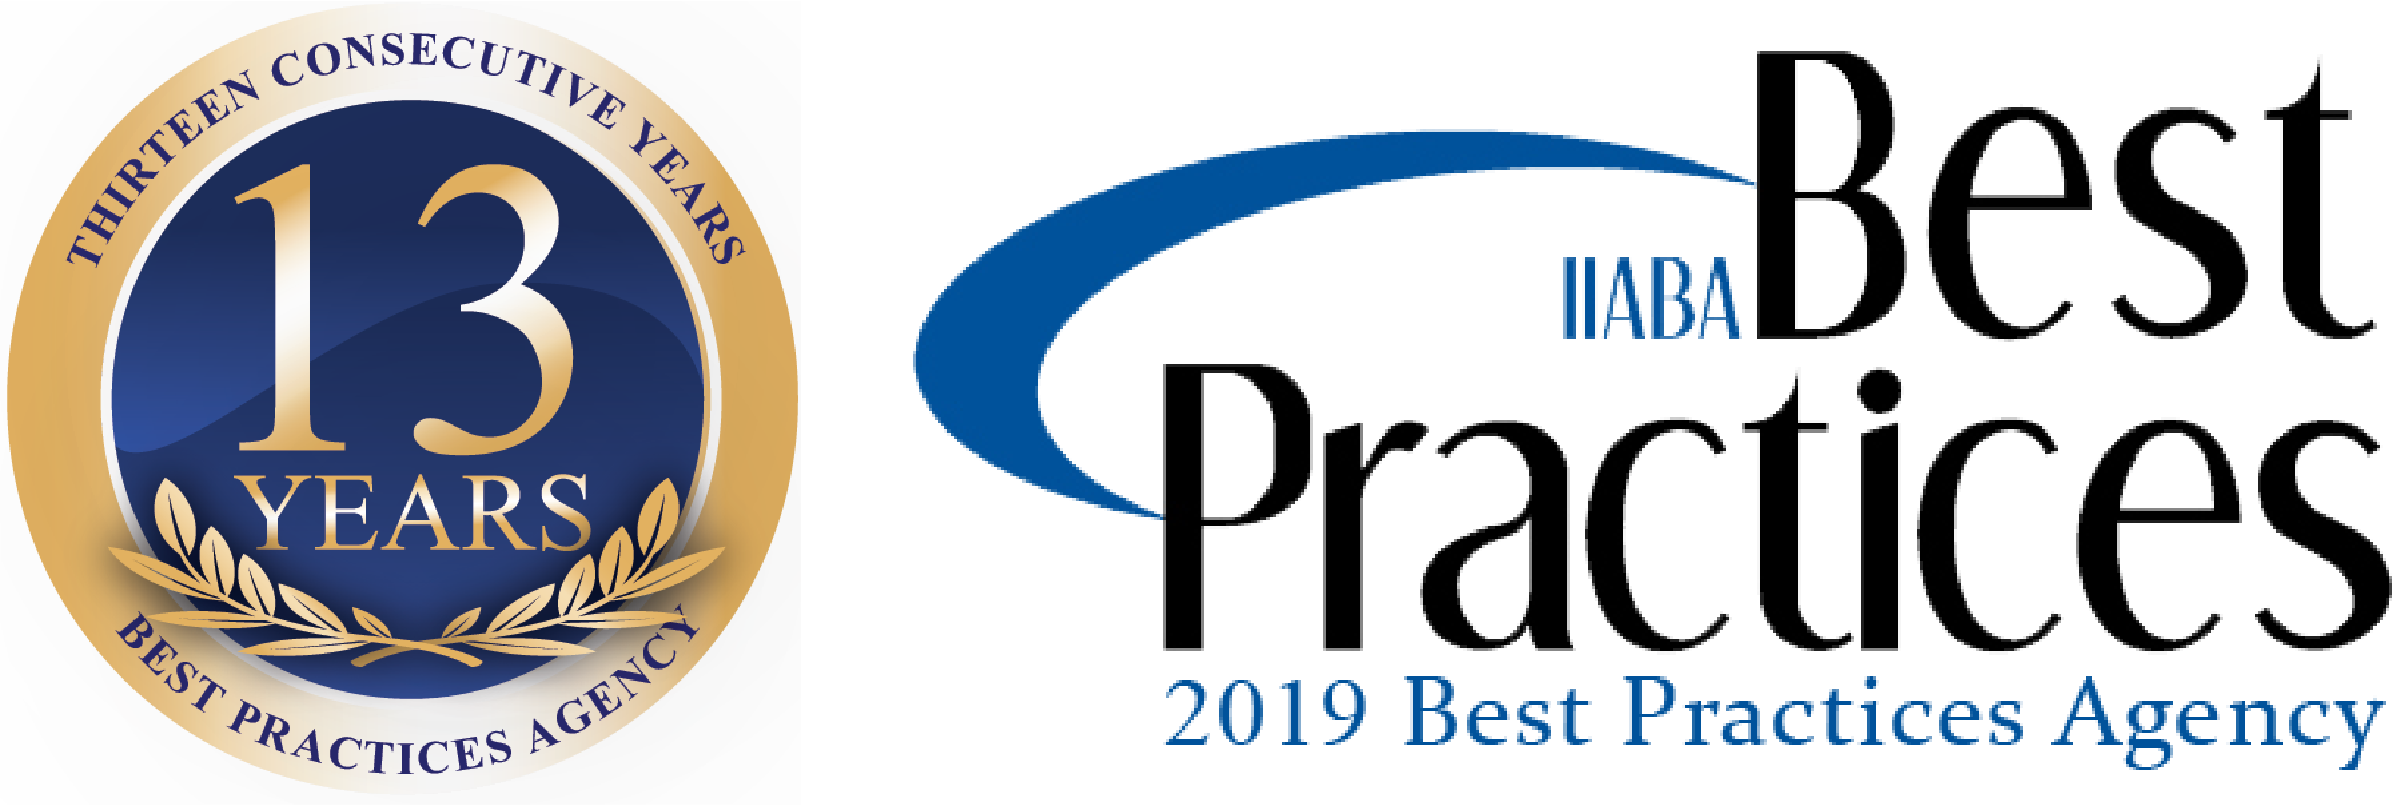 Thirteen Consecutive Years Best Practices Agency and IIABA 2019 Best Practices Agency Logo